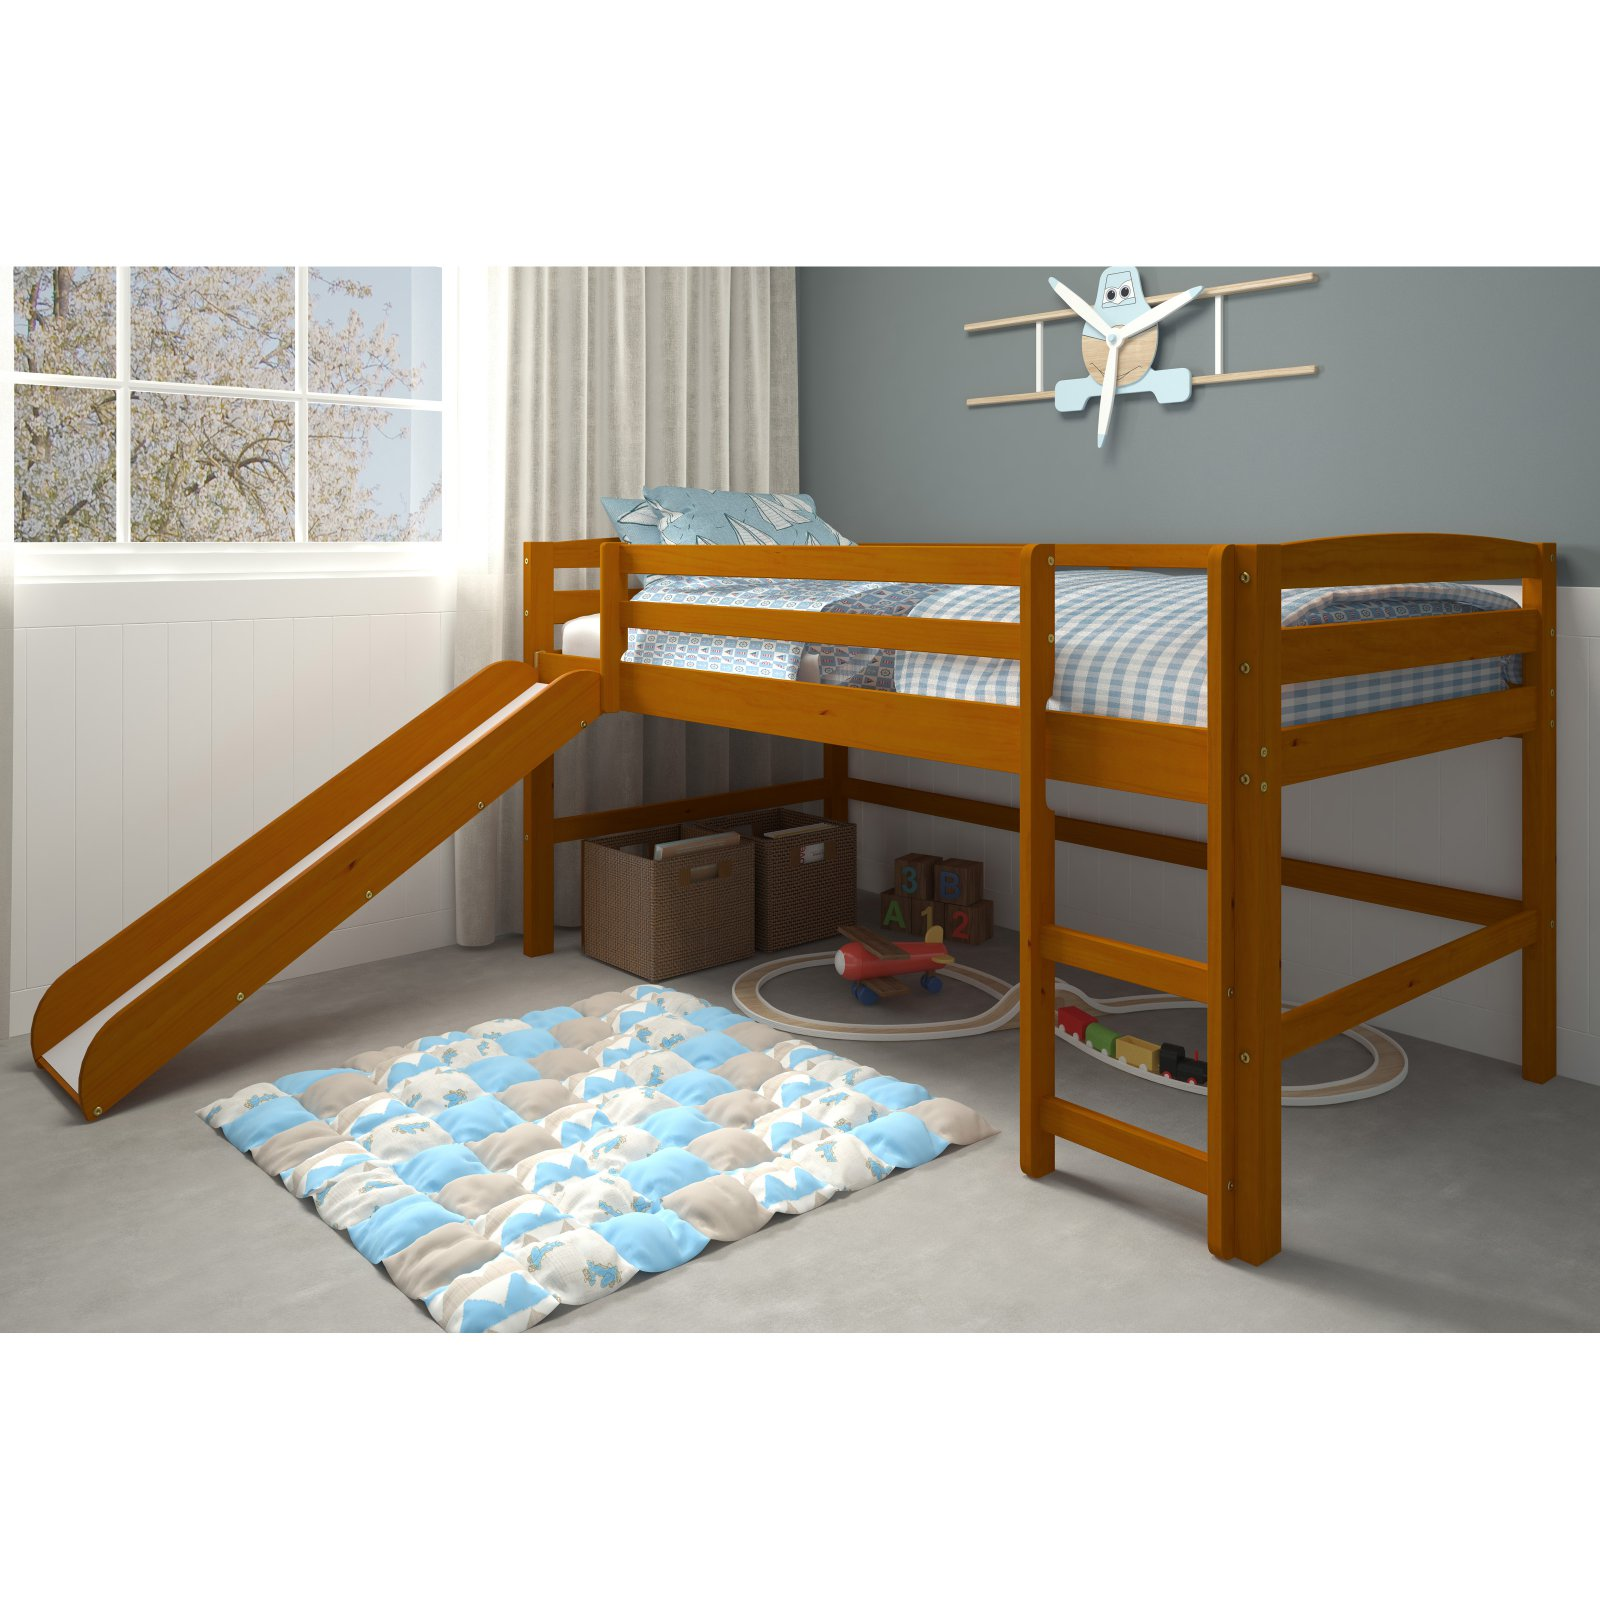 Woodcrest Pine Ridge Mini Loft with Ladder